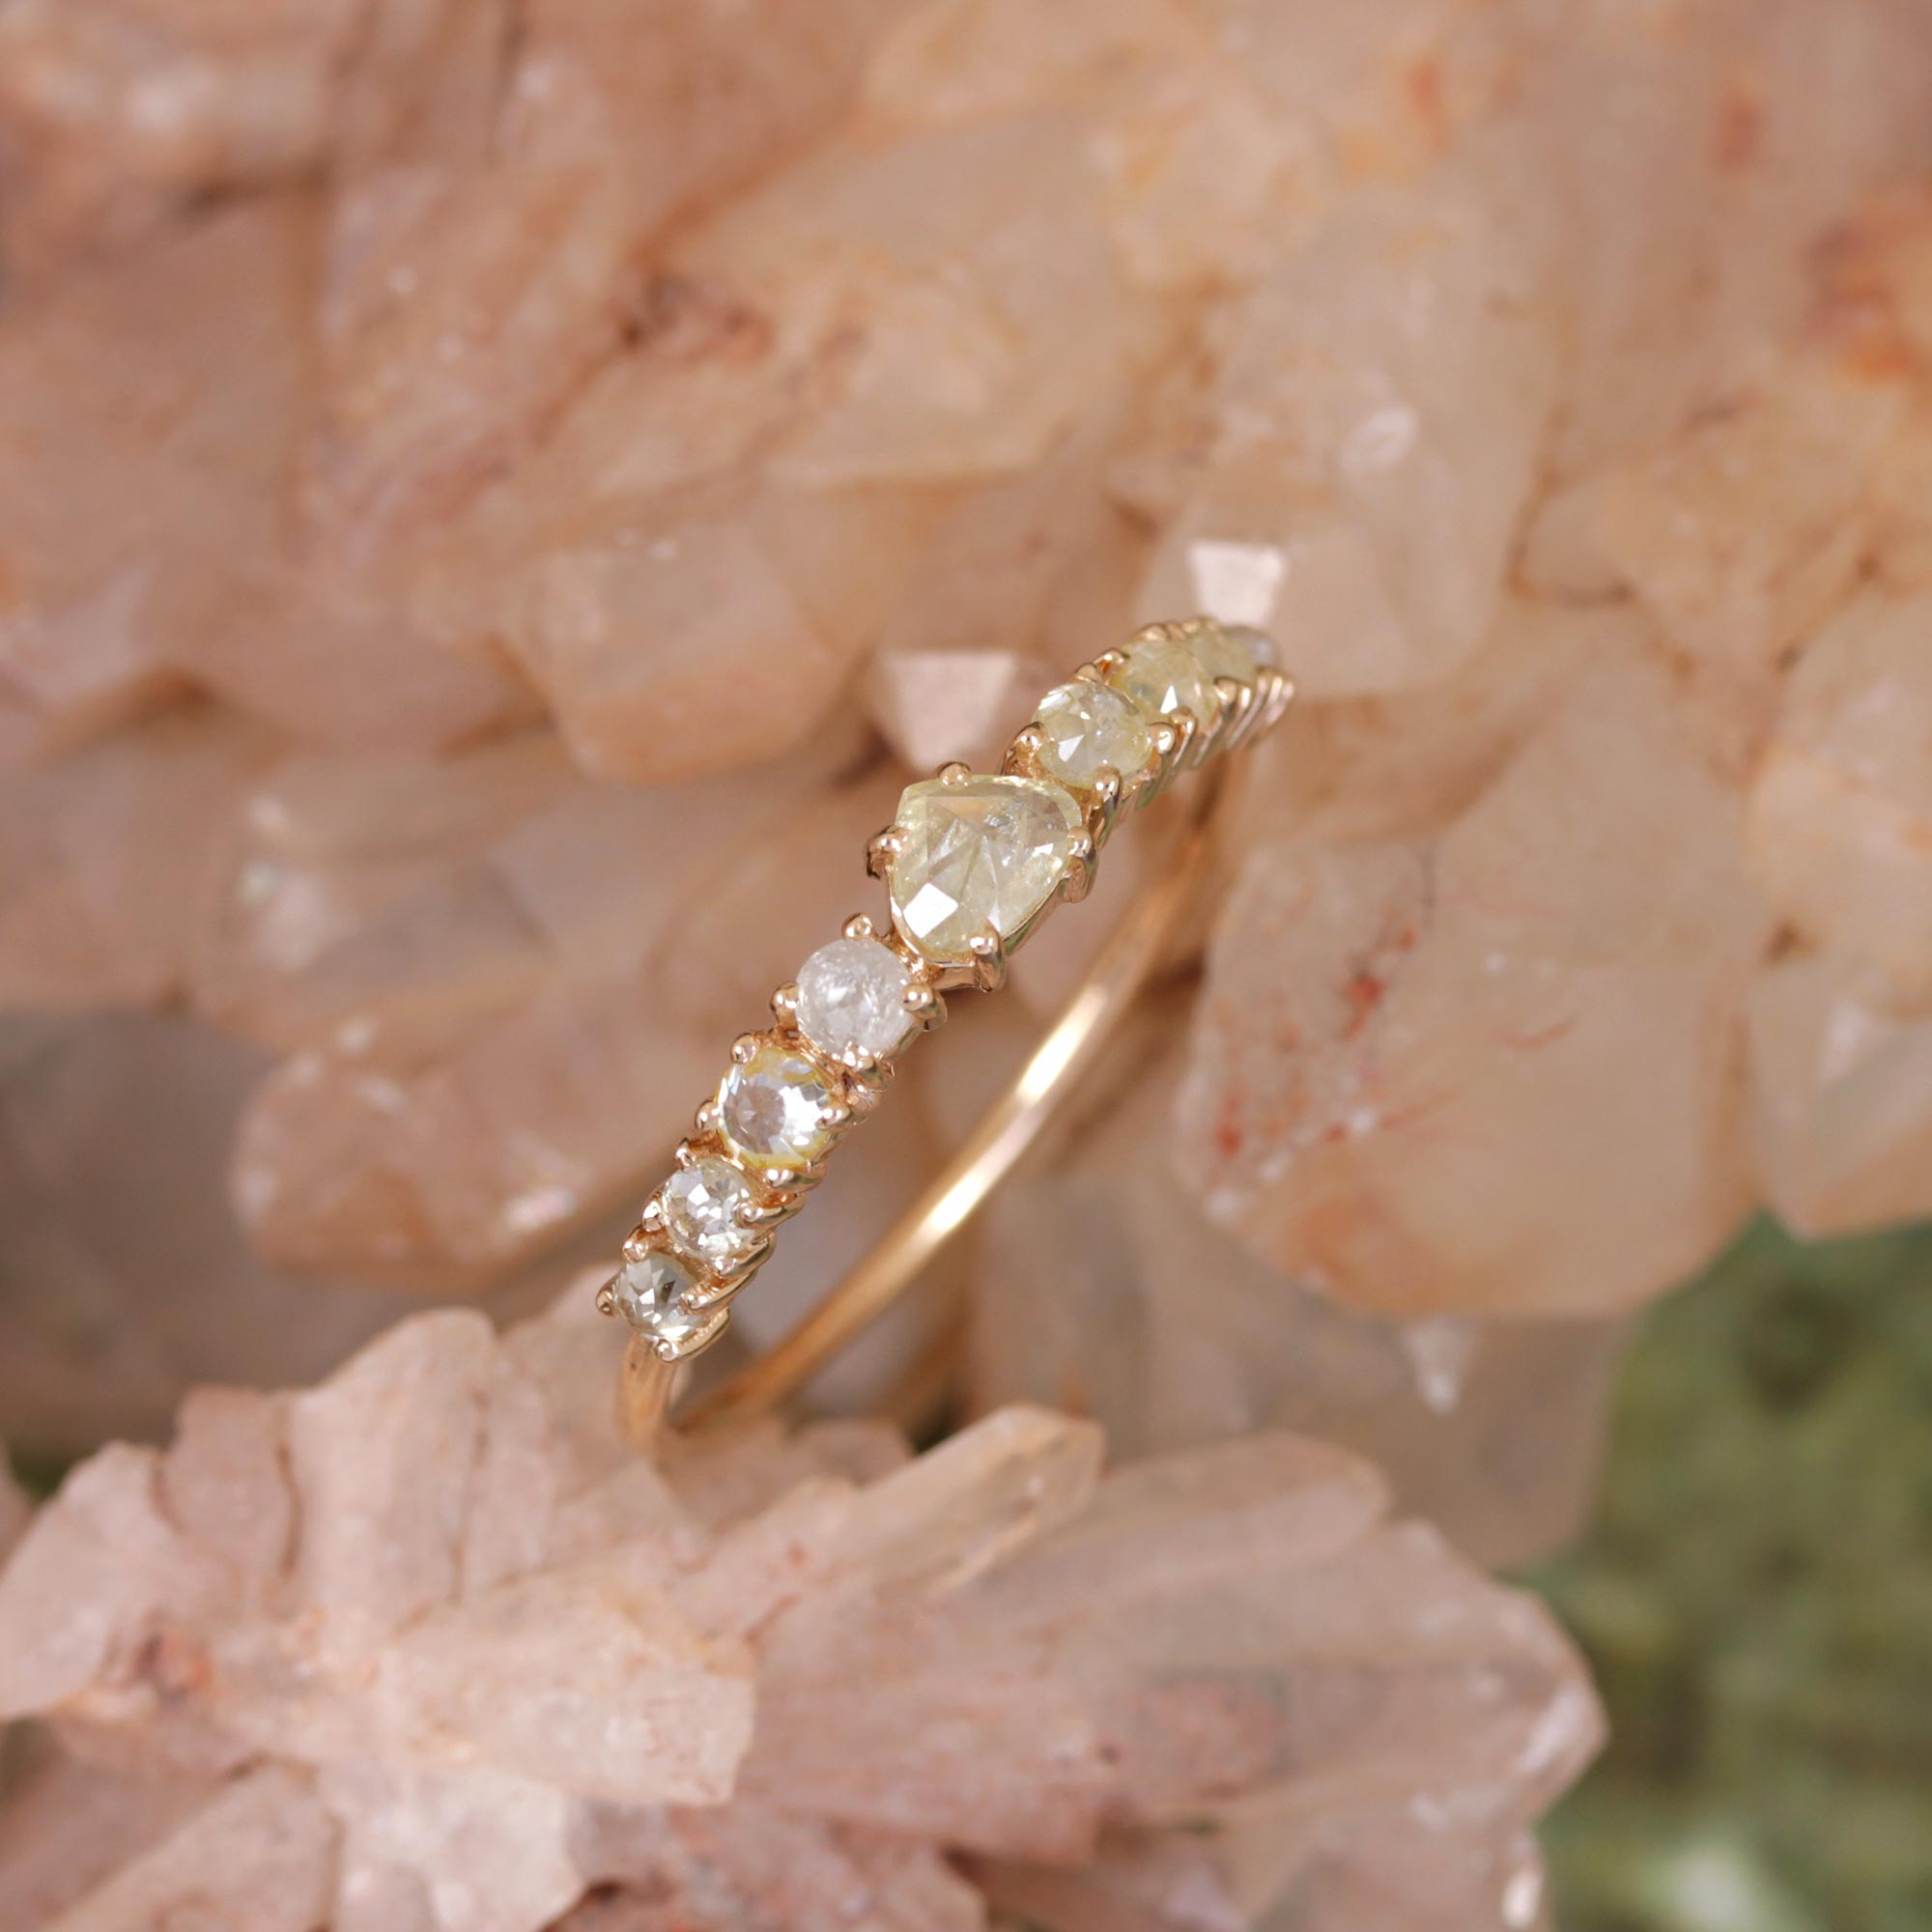 Natural Pave Diamond Ring 14K Solid Yellow Gold Jewelry